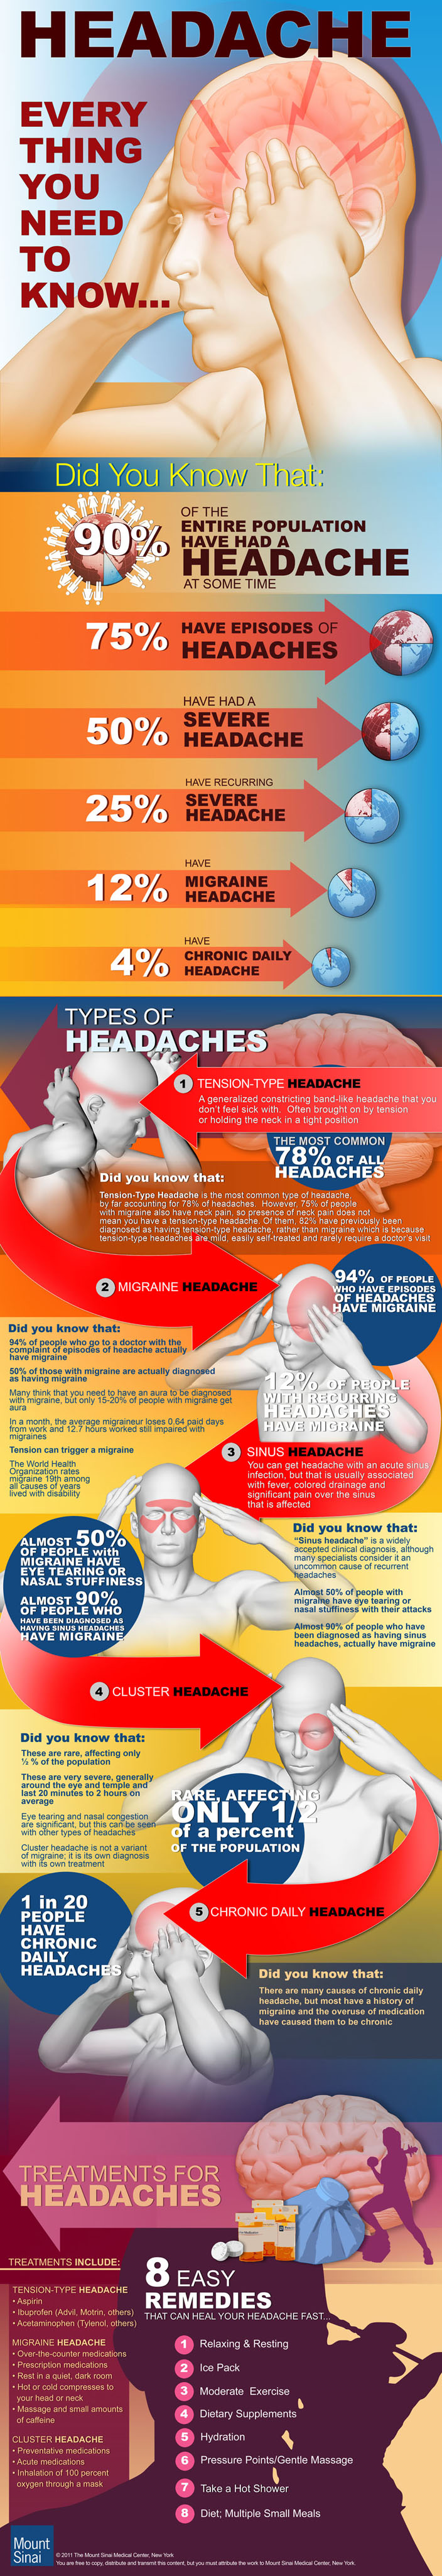 Headache: everything you need to know about it